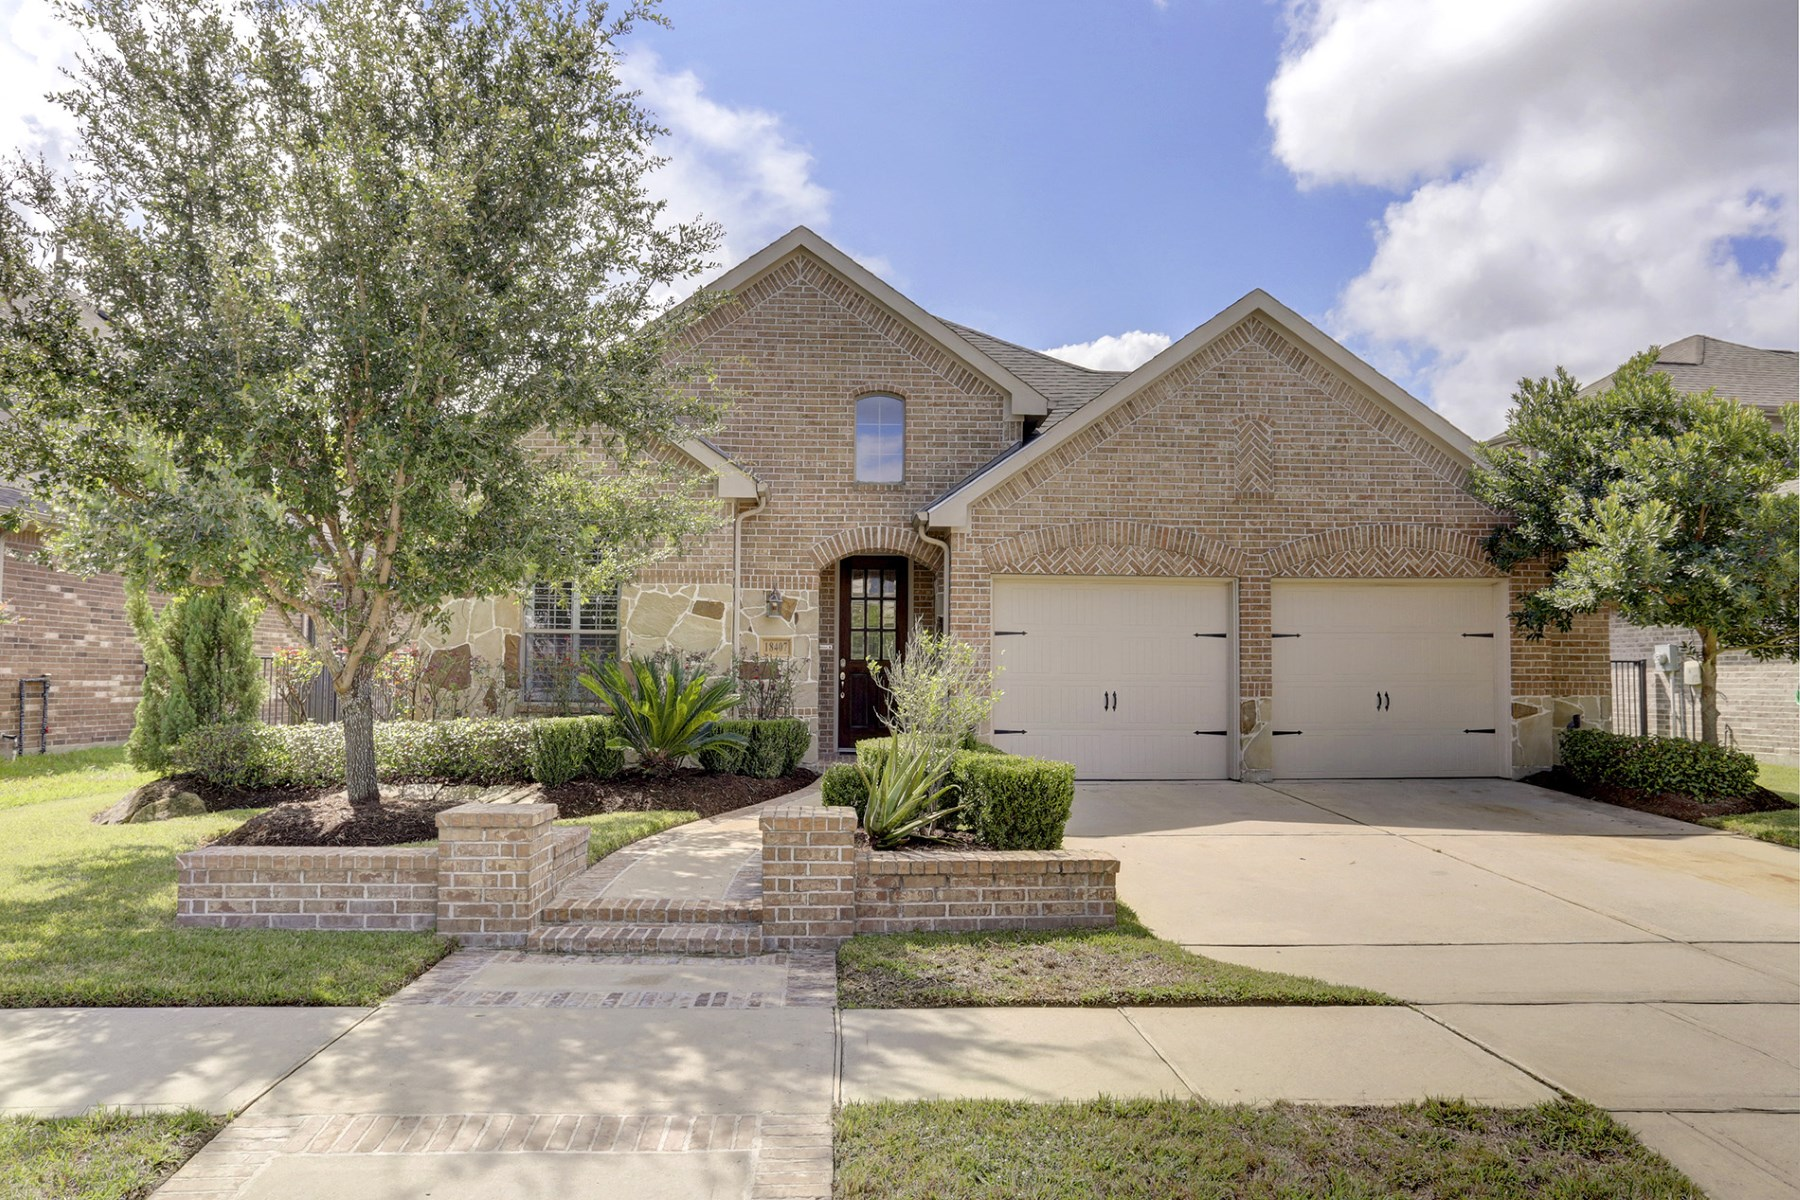 Single Family Home for Sale at 18407 Pin Oak Bend Drive Cypress, Texas 77433 United States